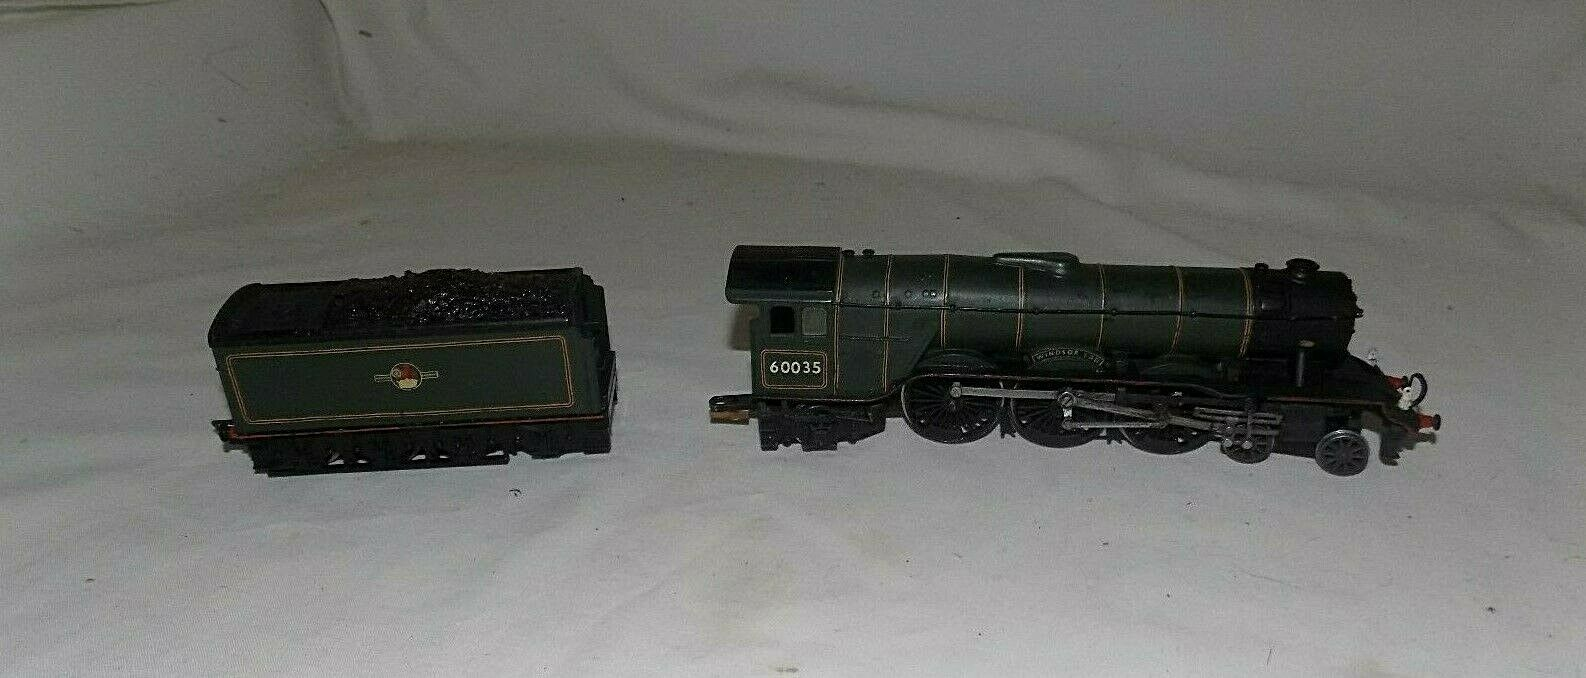 HORNBY R2341 classe A3 BR 462 60035 WINDSOR LAD.